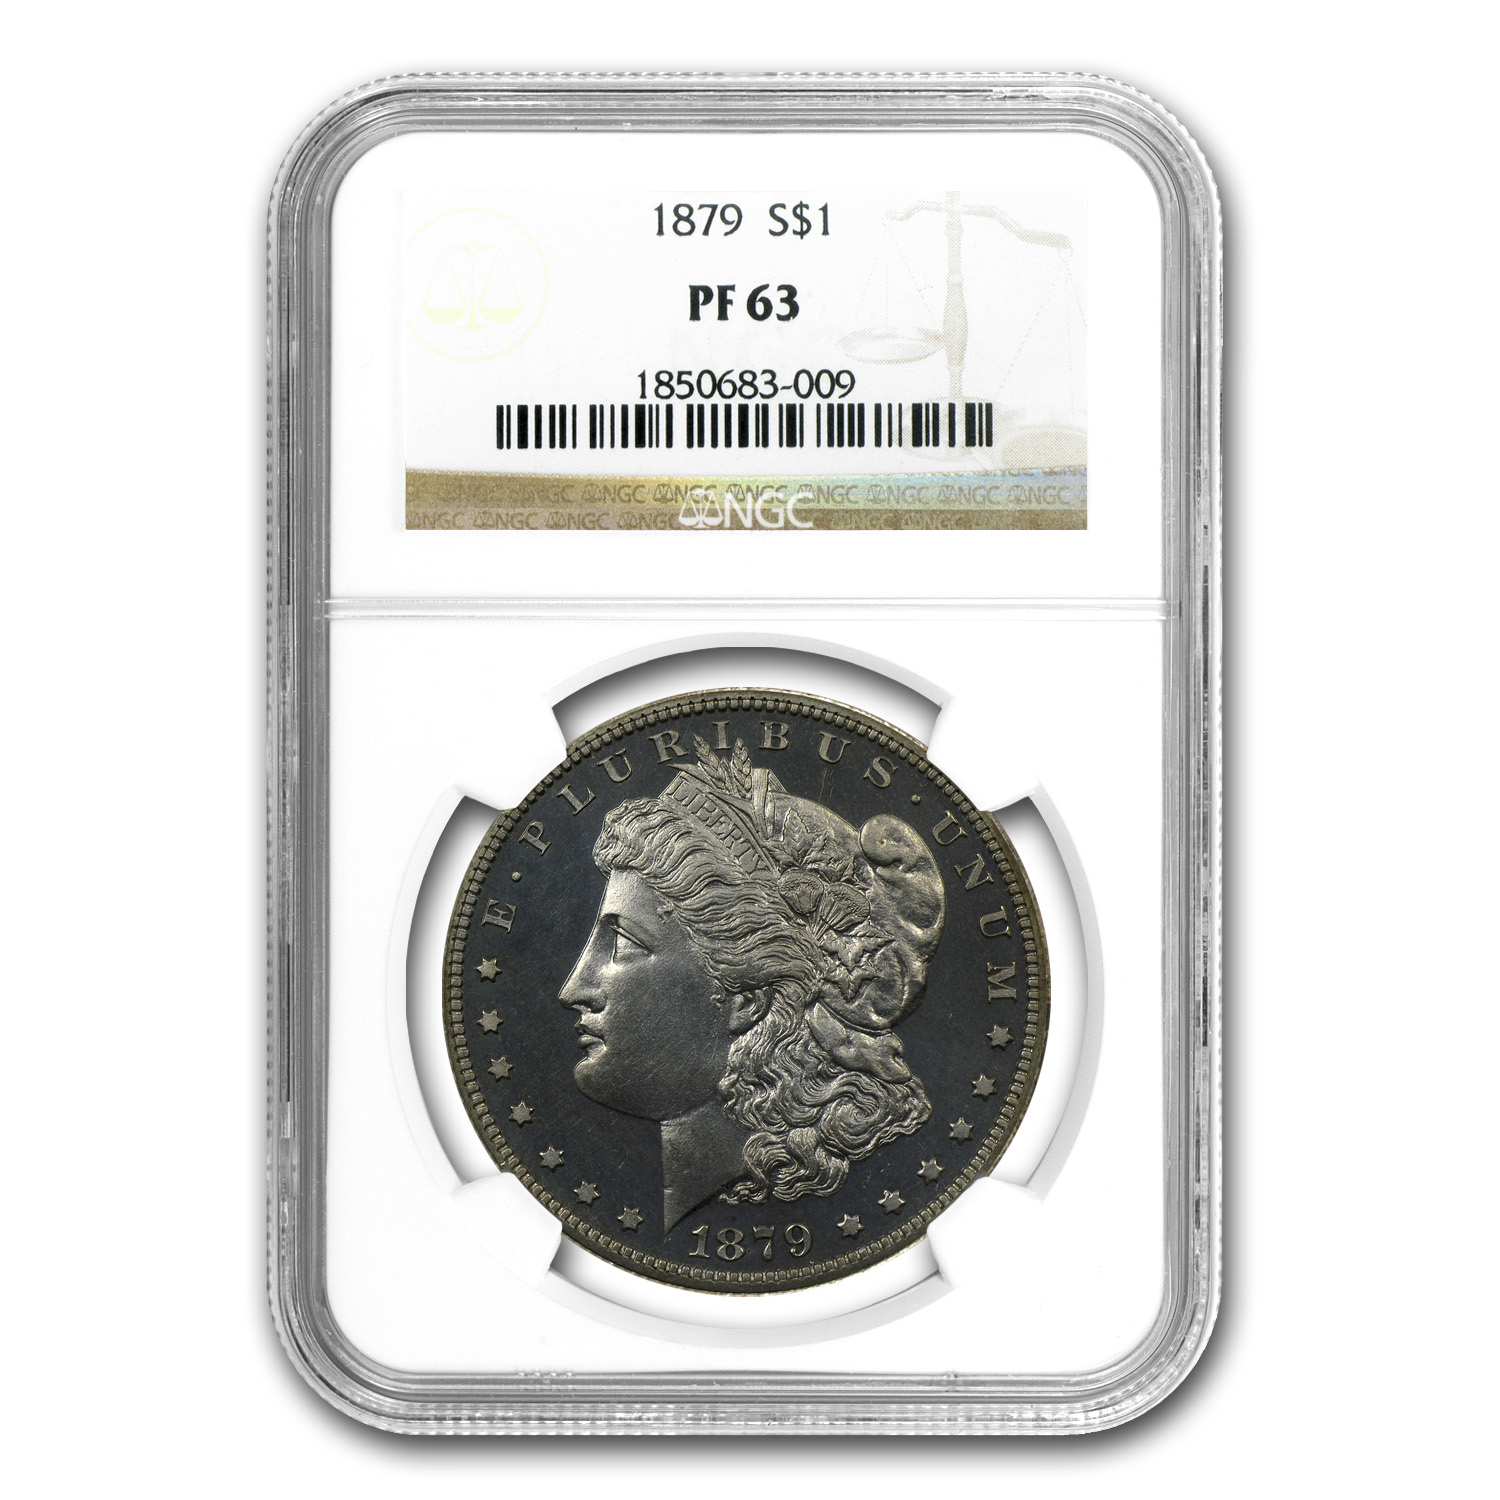 1879 Morgan Dollar - PF-63 NGC - Proof